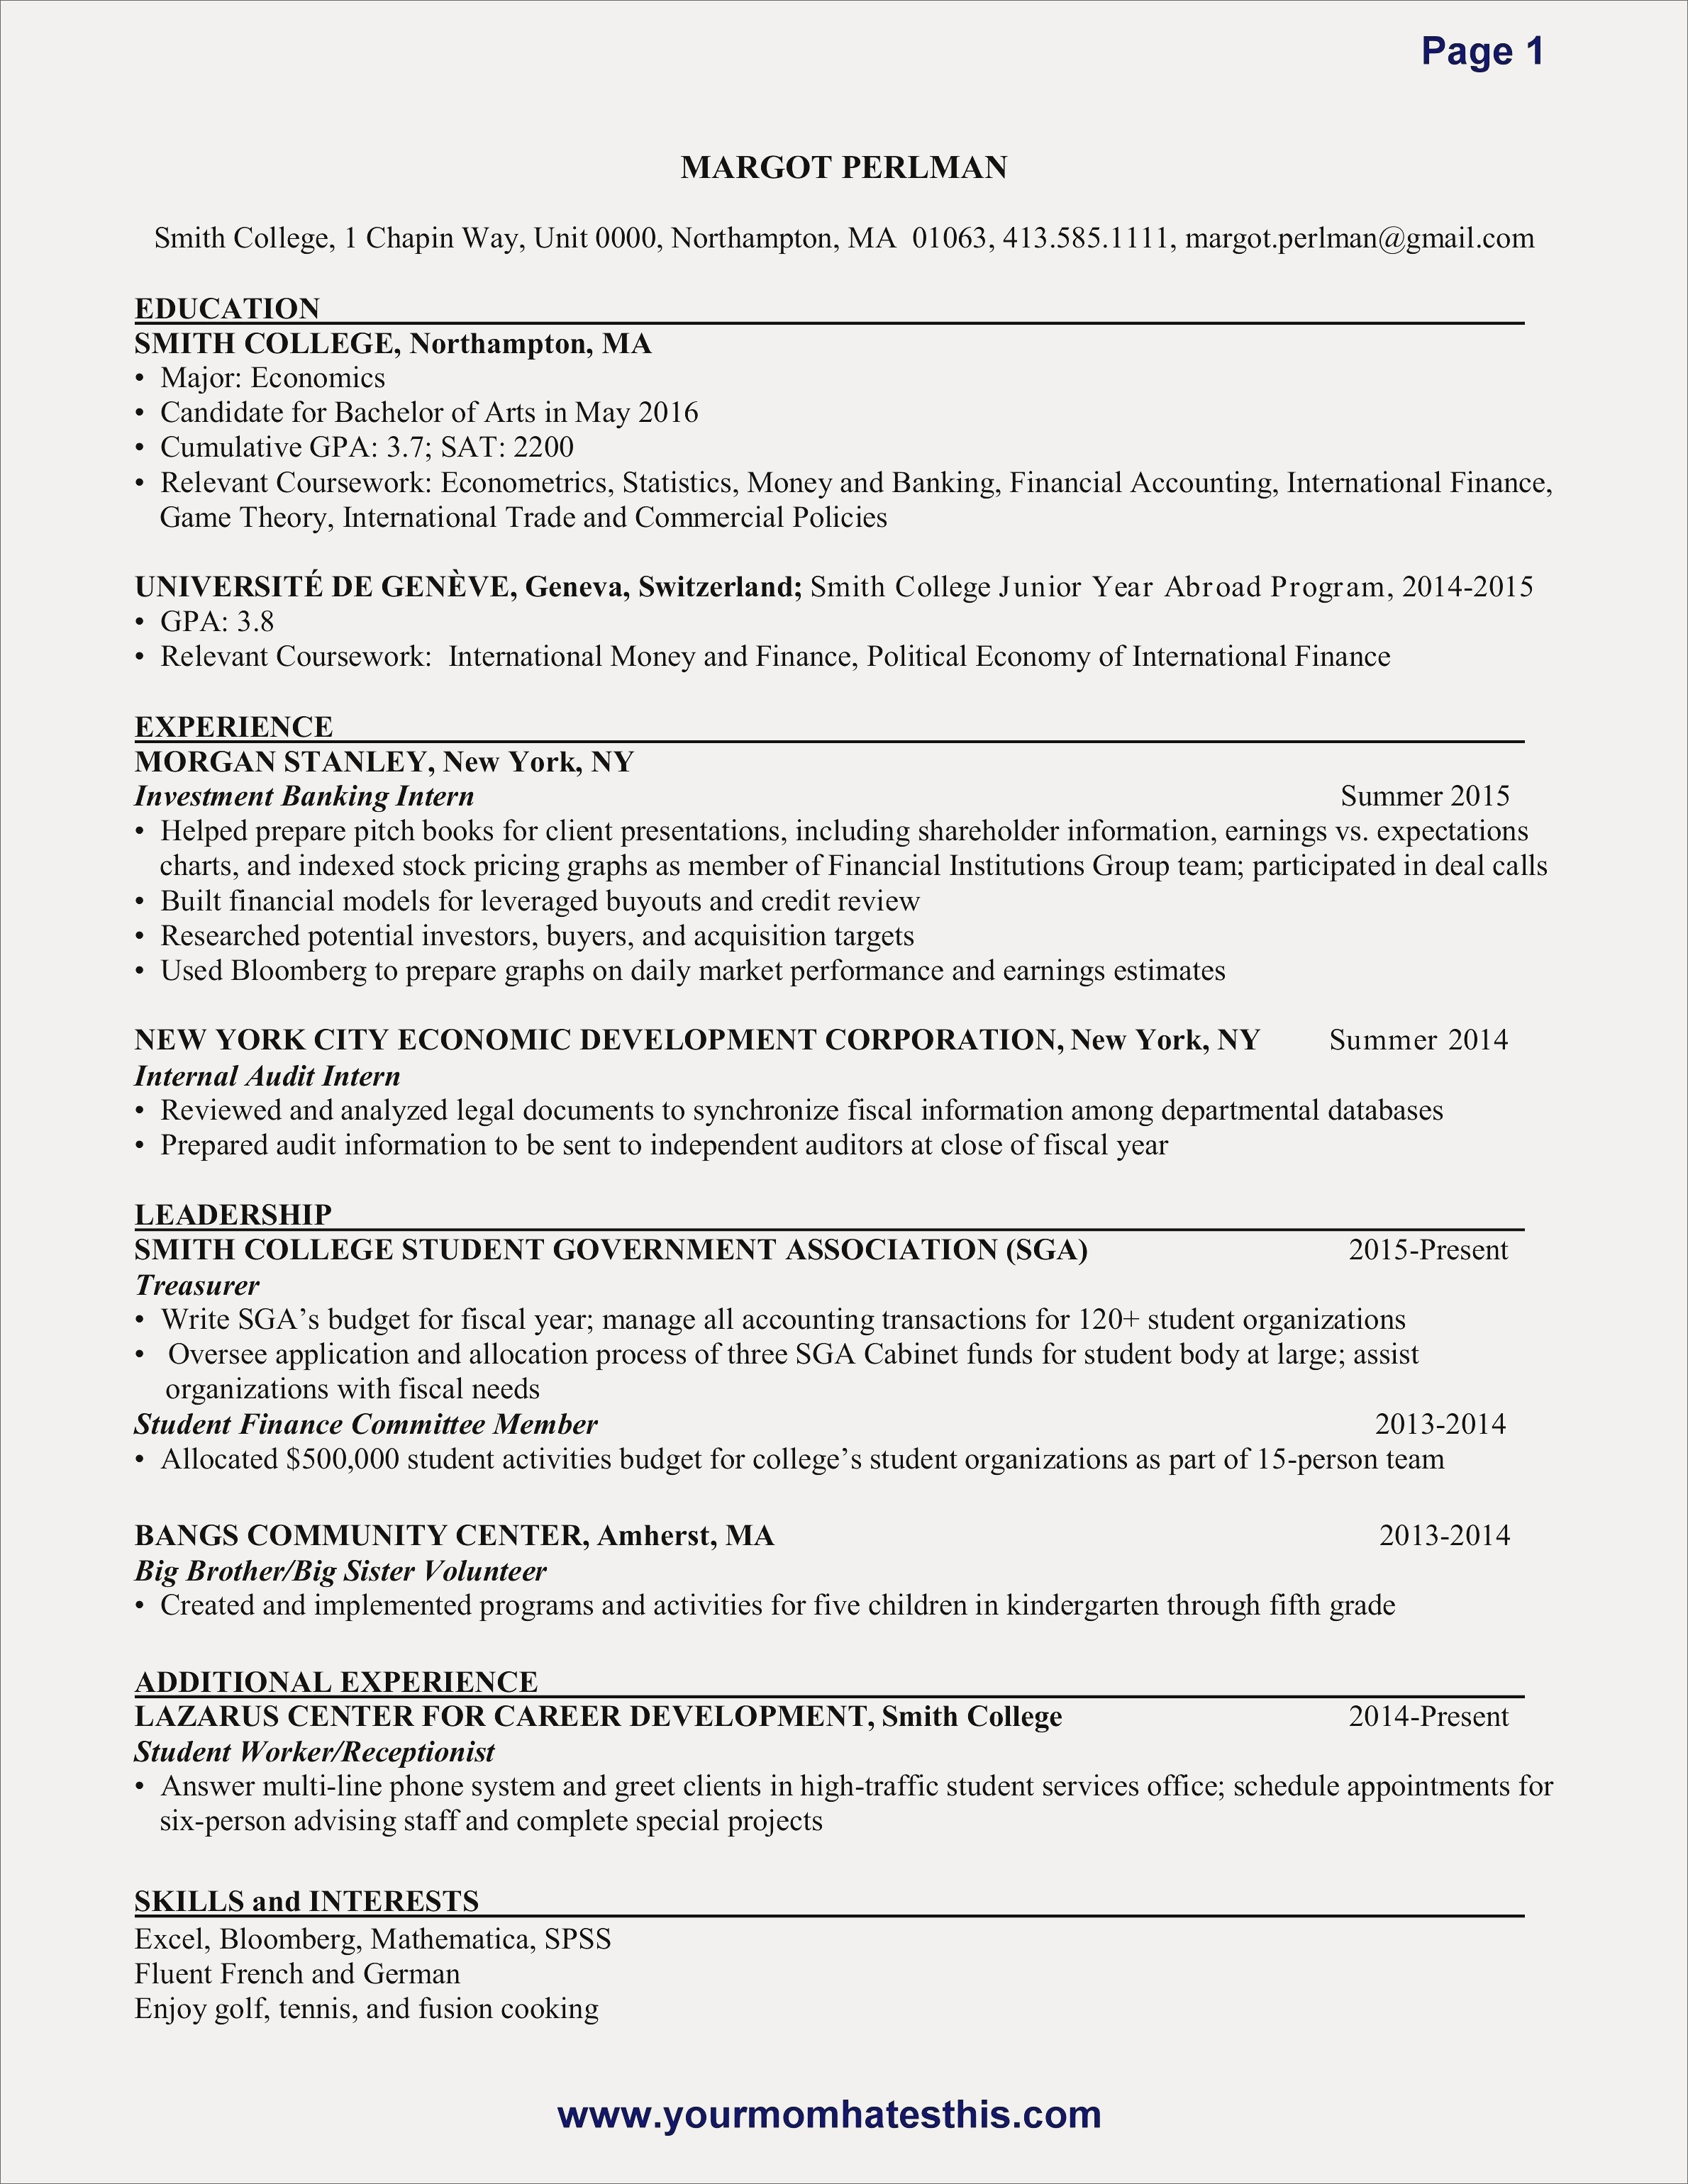 Resume Template with Volunteer Experience - Experienced Resume Samples Refrence New New Resume Sample Best